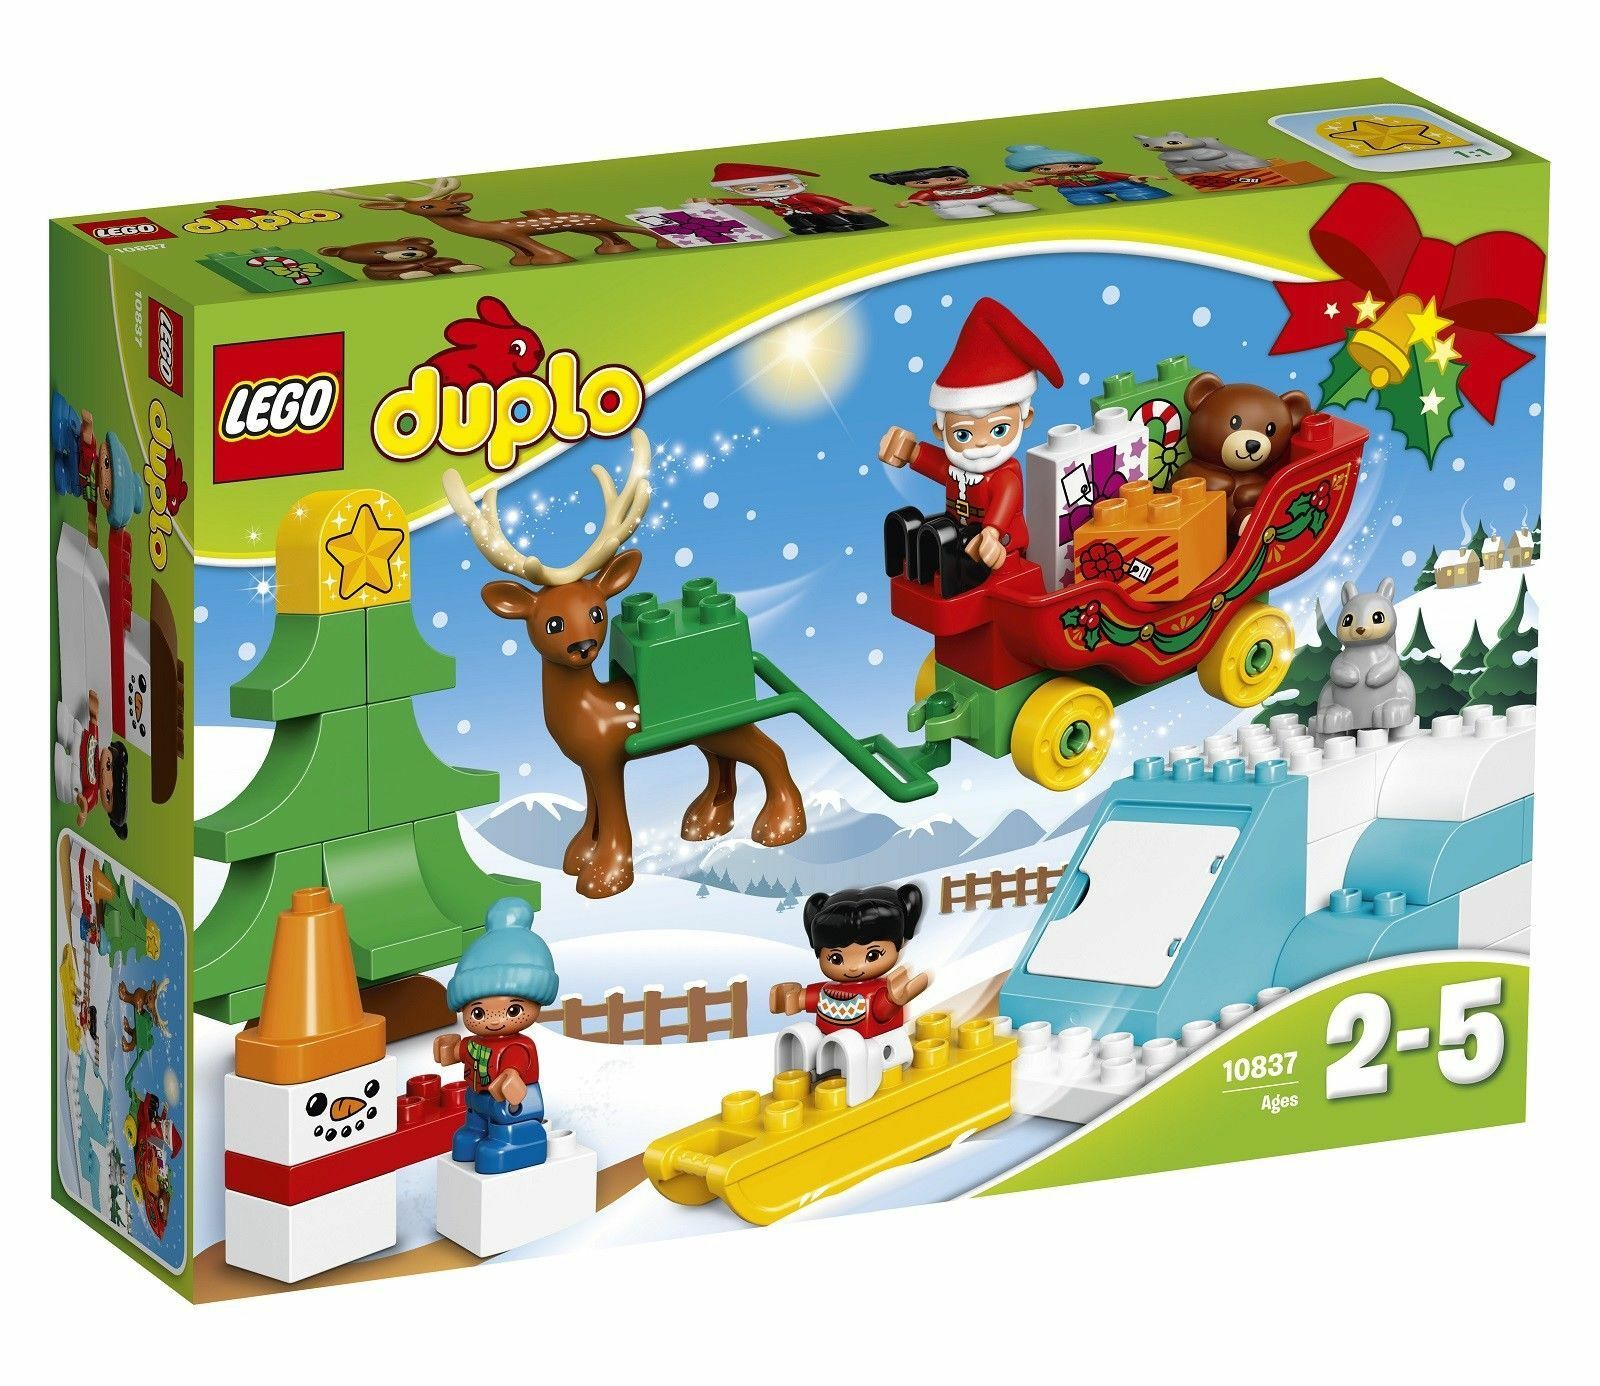 LEGO Duplo Santa's Winter Holiday 2017 (10837) with Father Christmas & Reindeer.